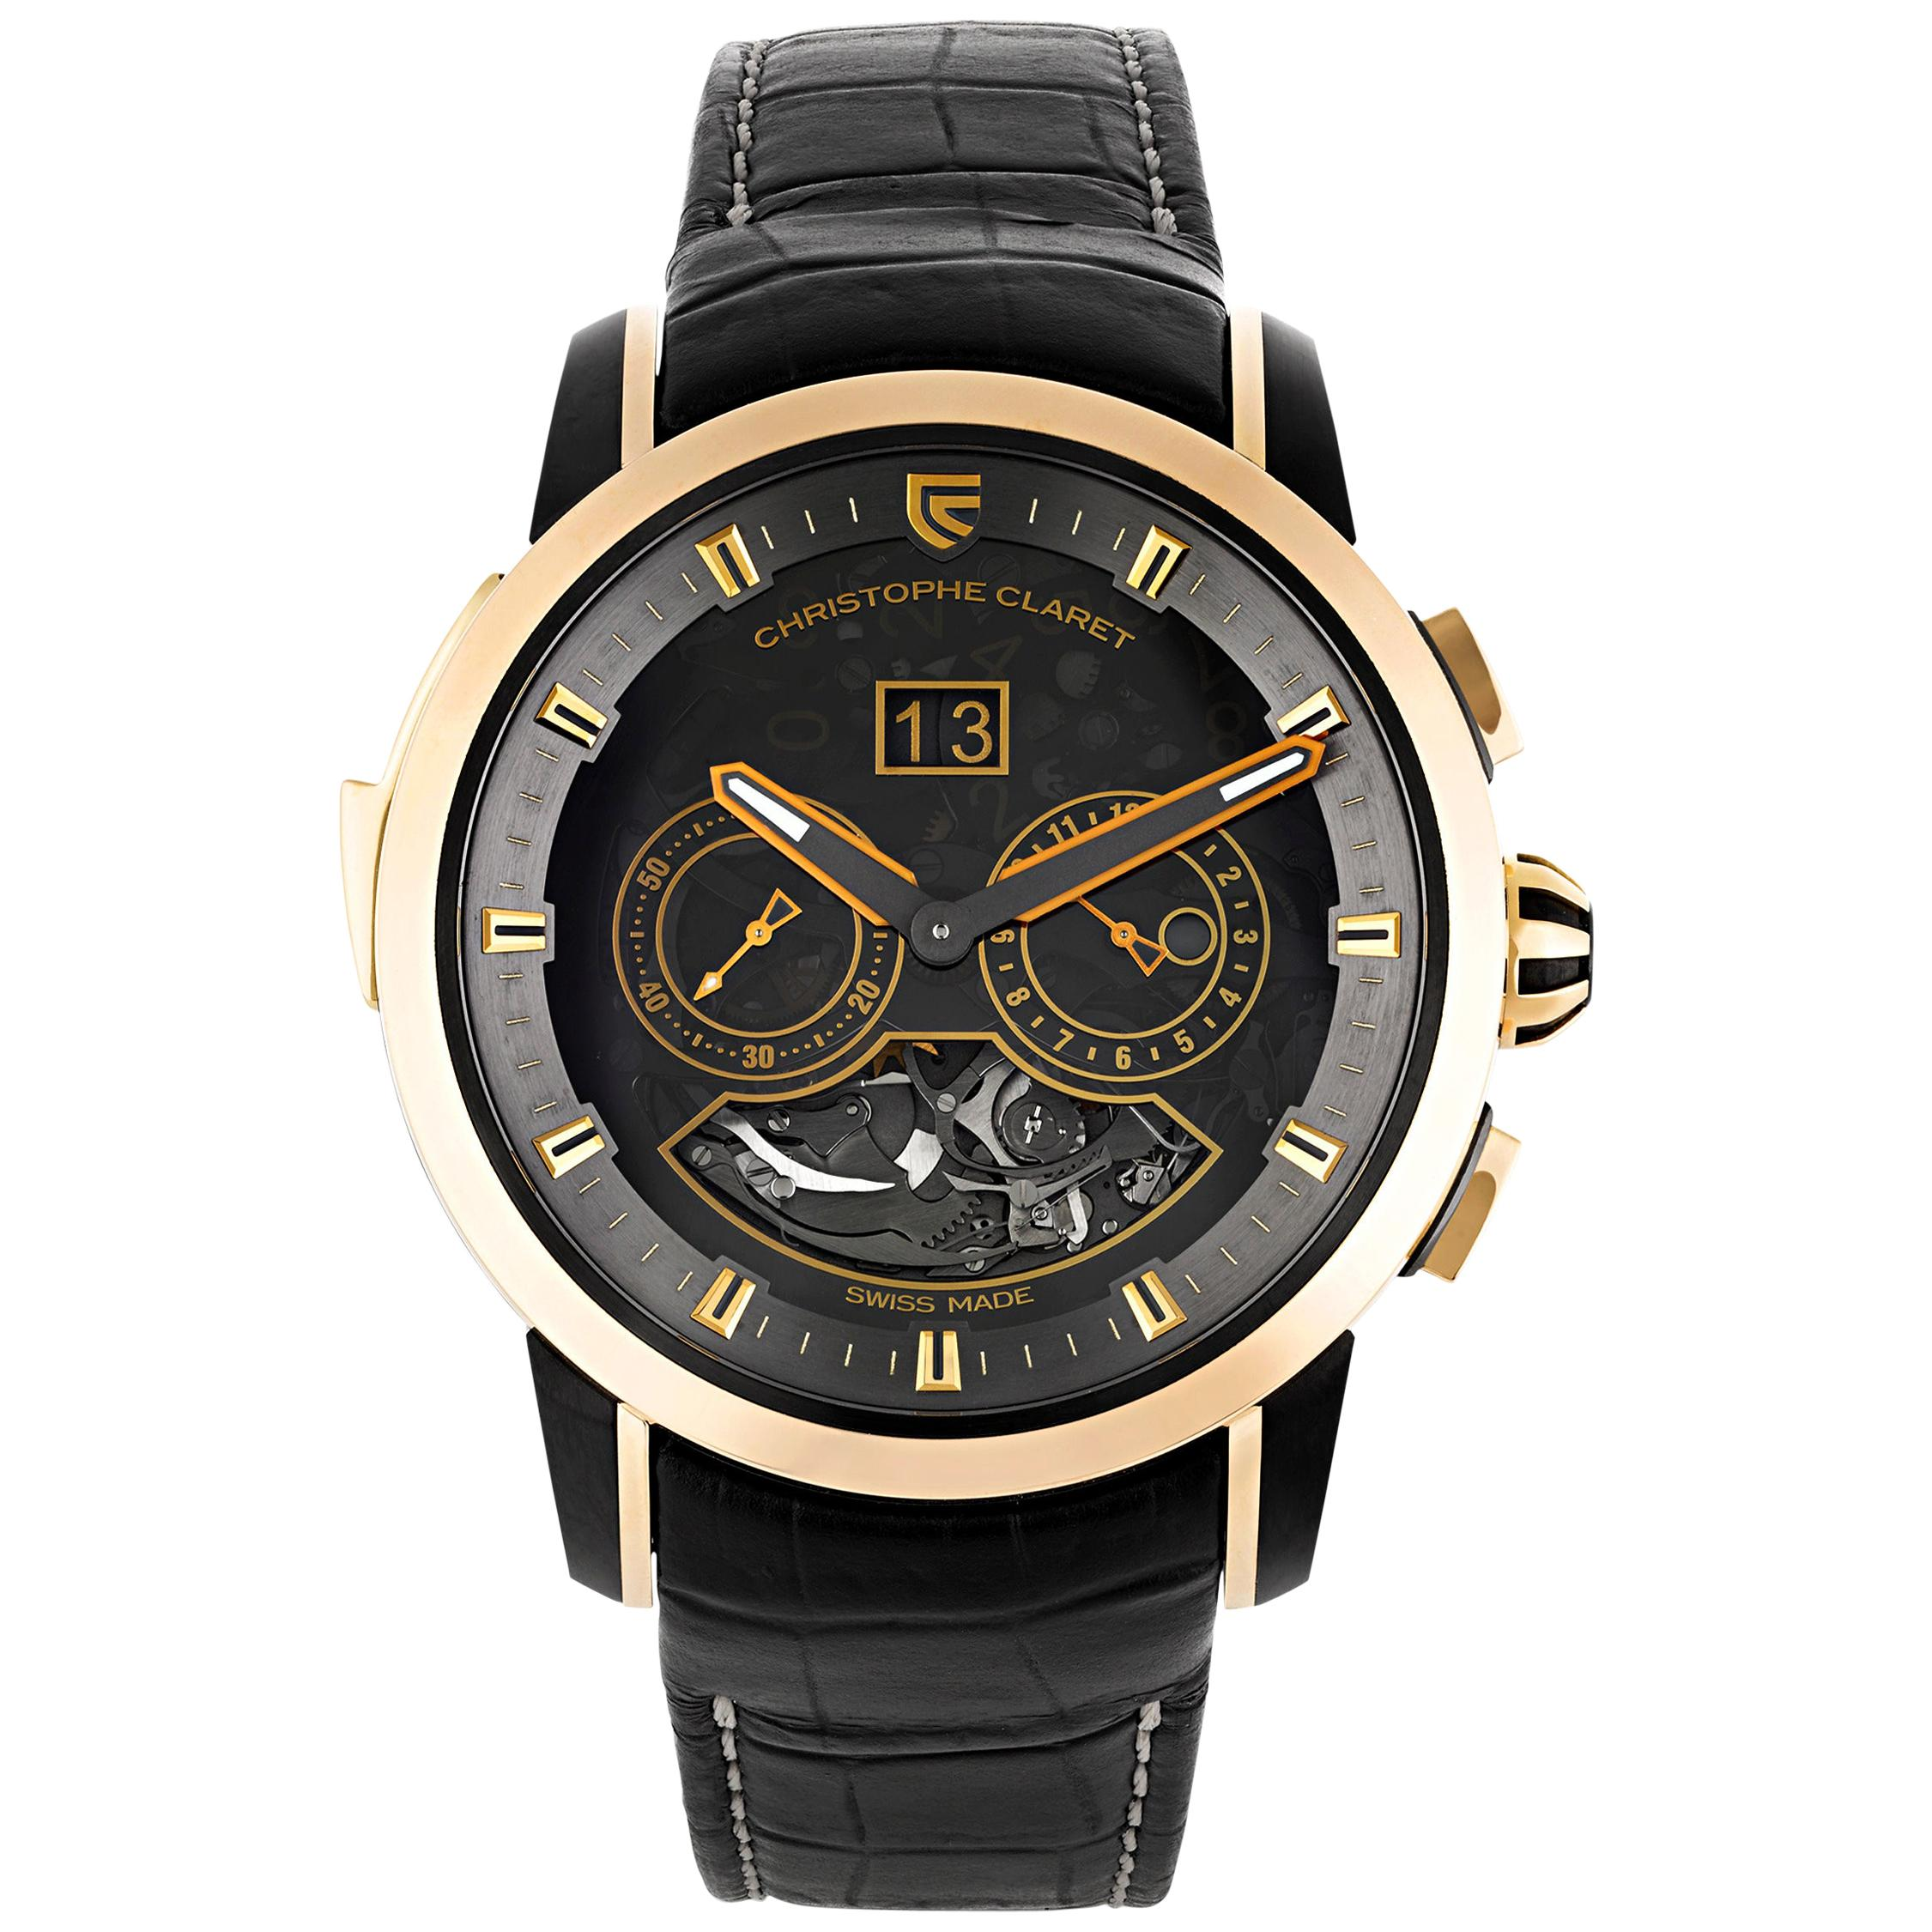 Allegro Limited Edition Watch by Christophe Claret